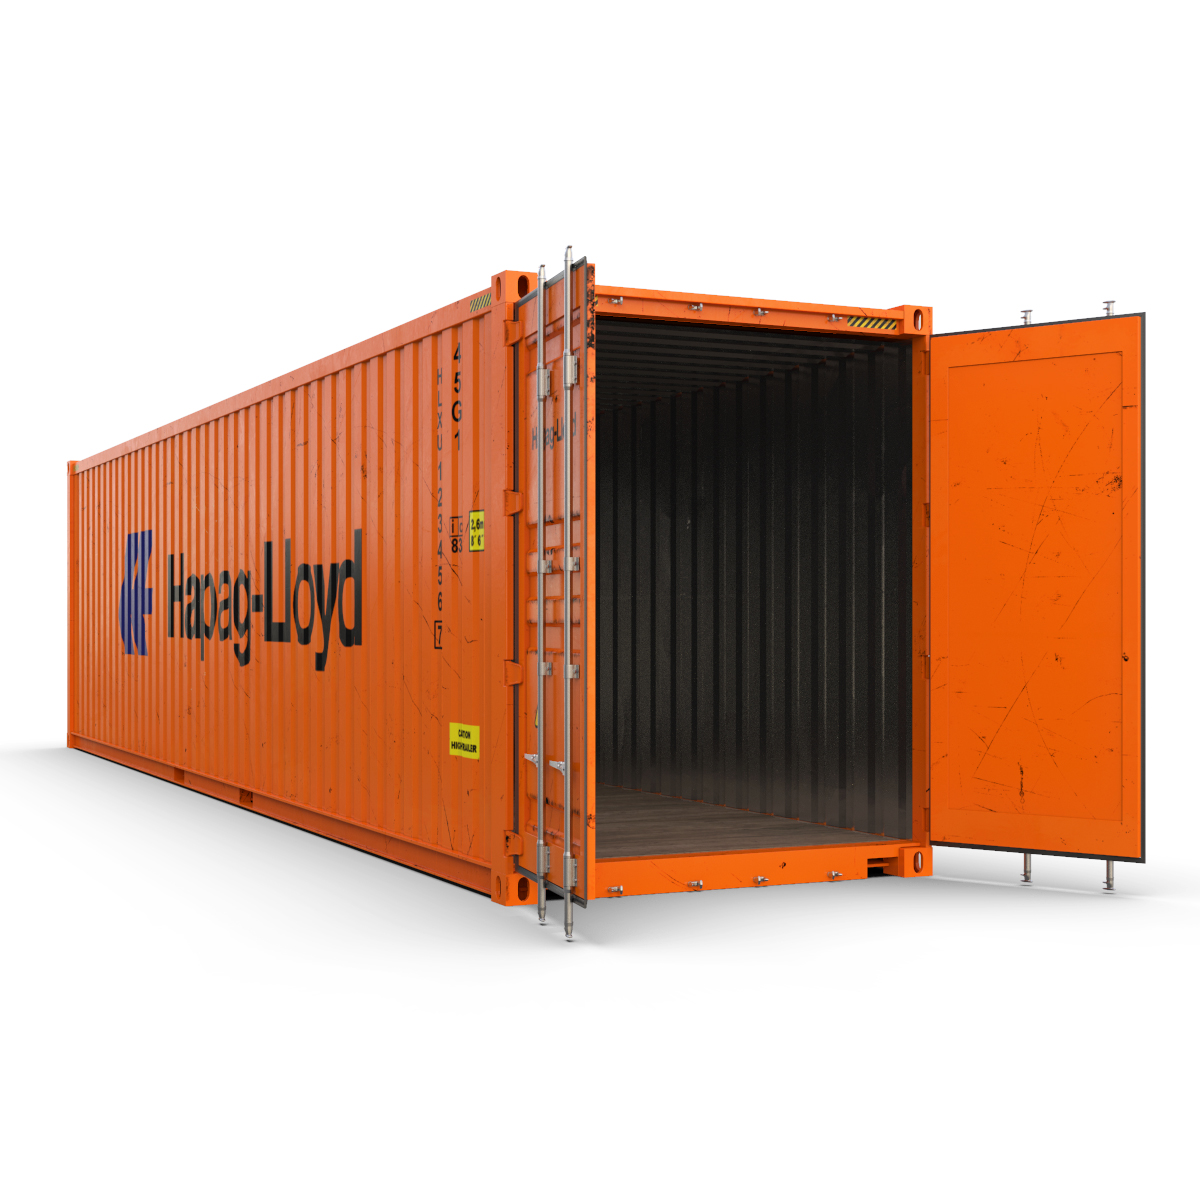 40 feet high cube hapag lloyd shipping container 3d model max fbx ma mb texture obj 278422